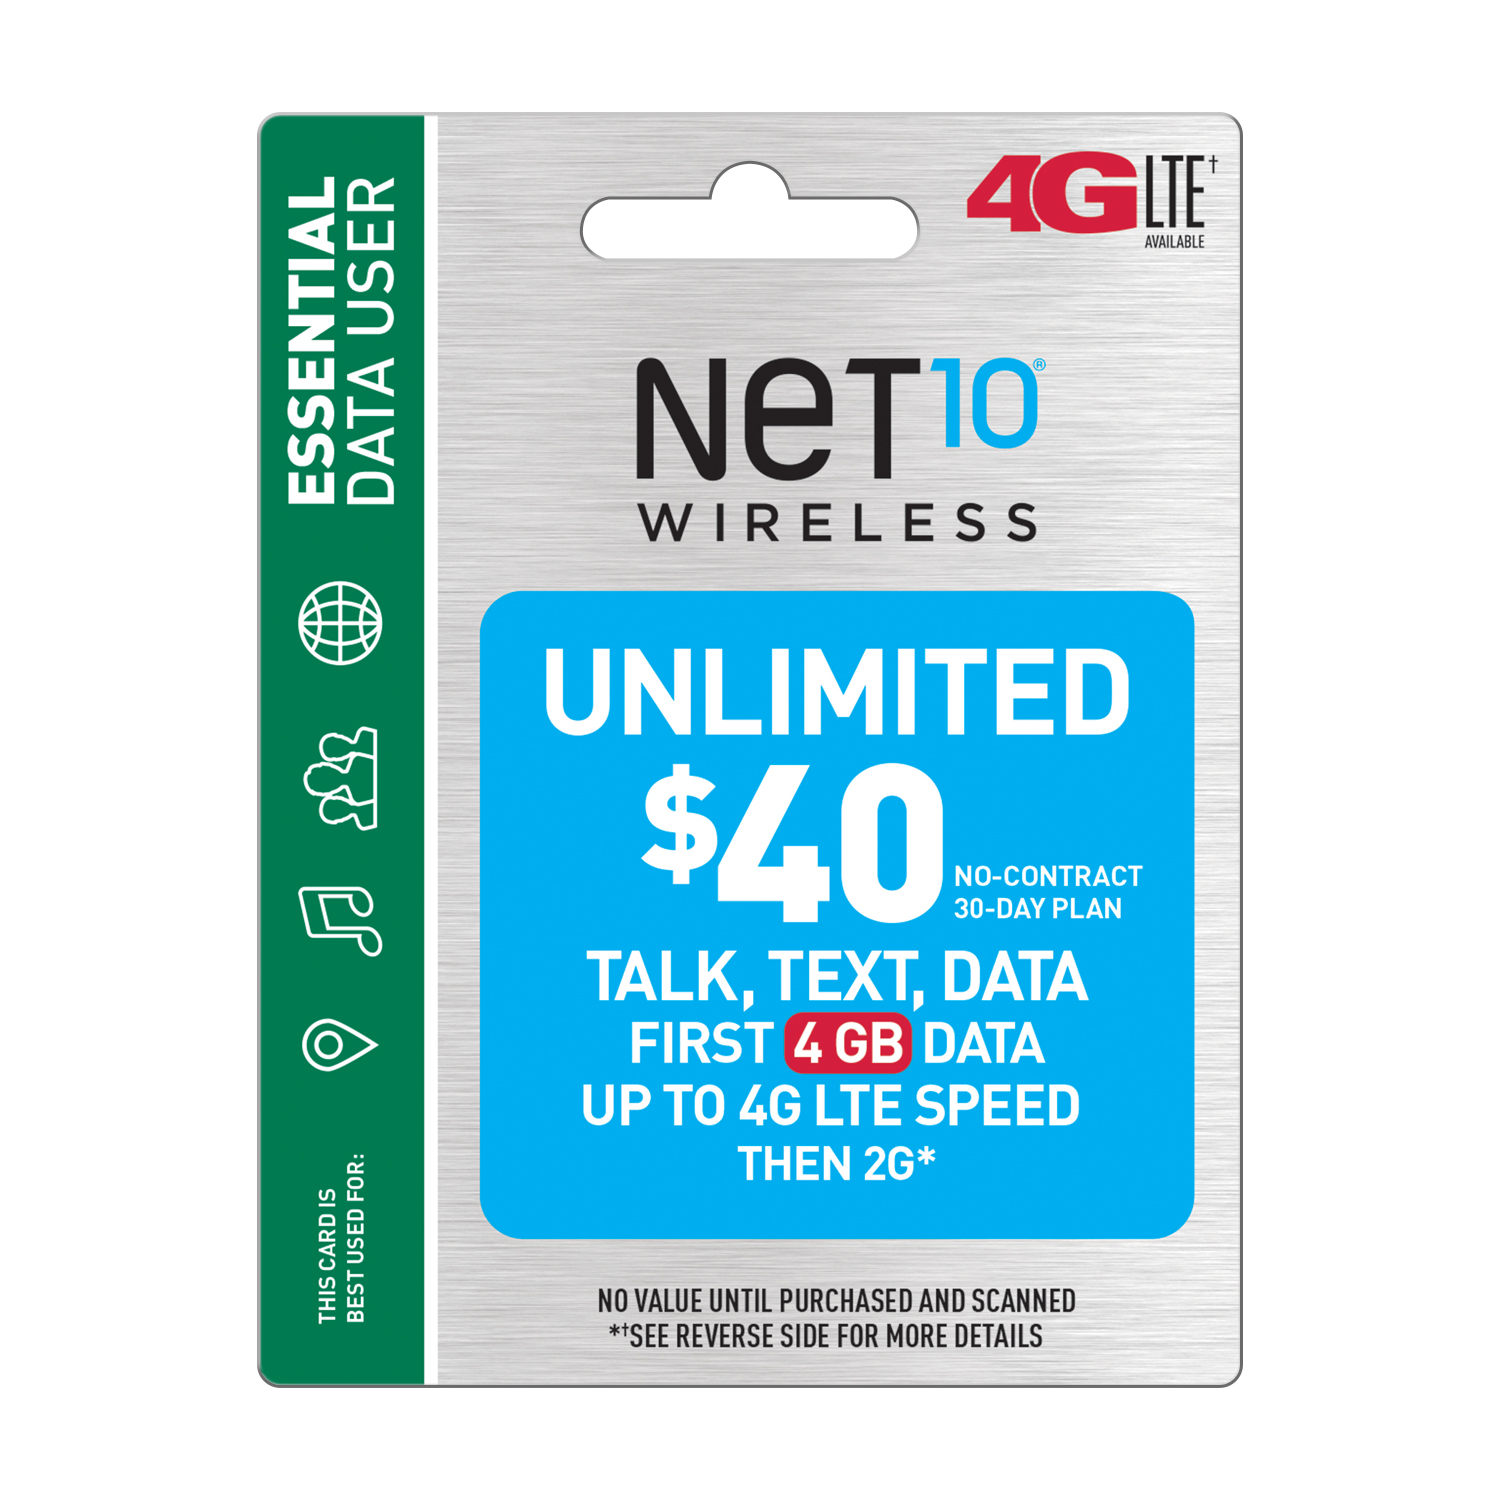 Net10 $40 Unlimited 30 Day Plan (4GB of data at high speed, then 2G*) (Email Delivery)